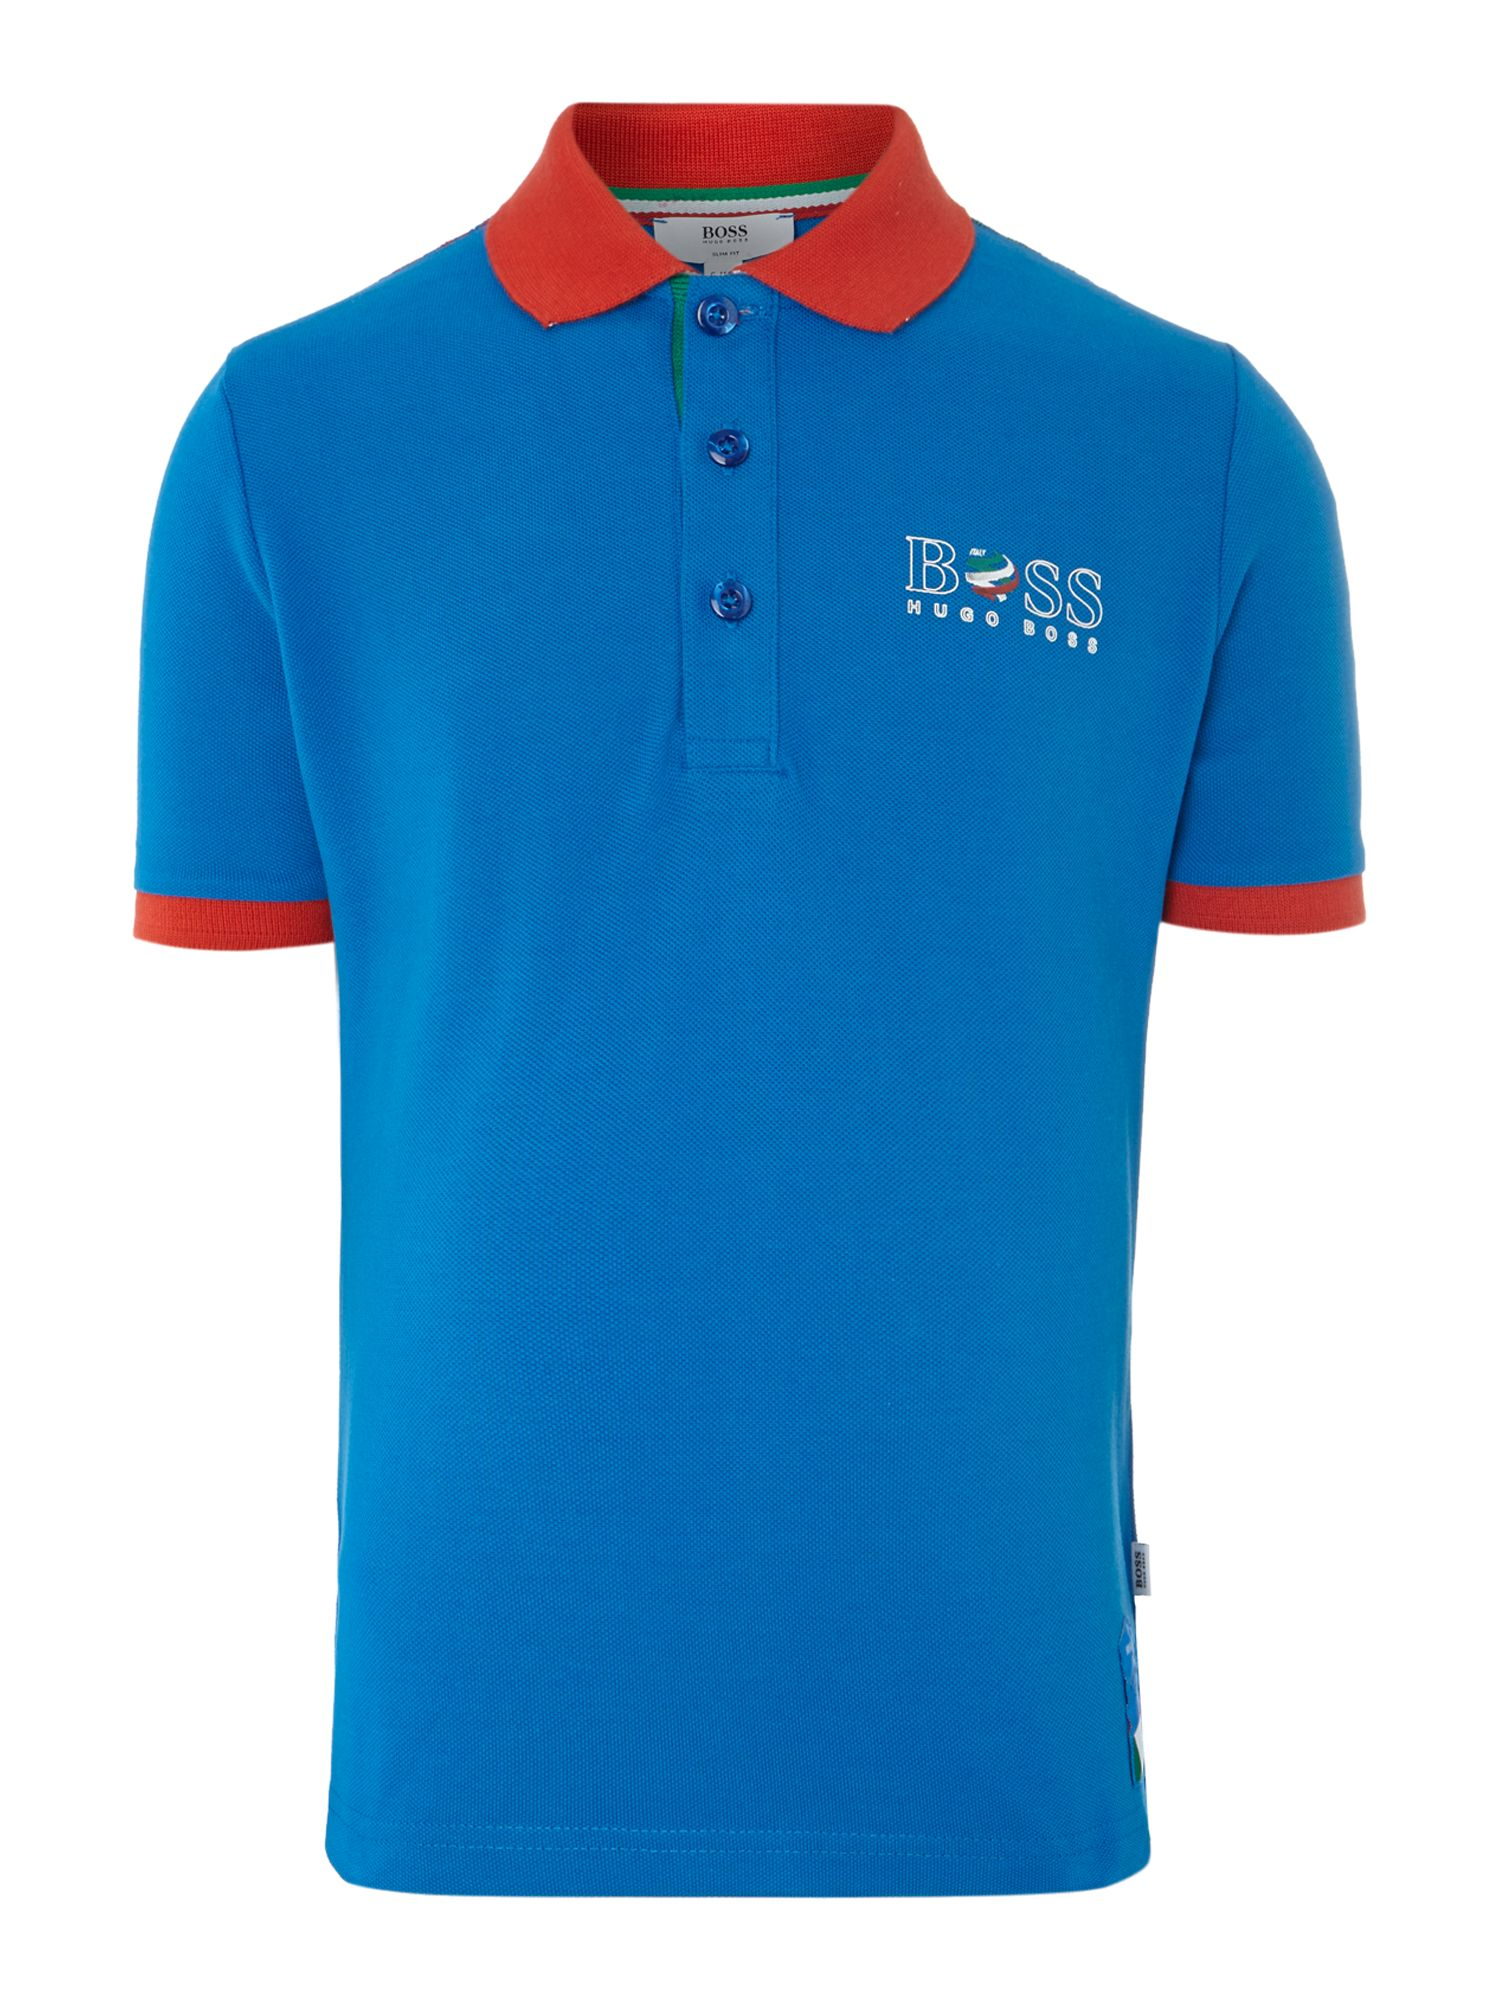 Kids Italy football colours polo shirt